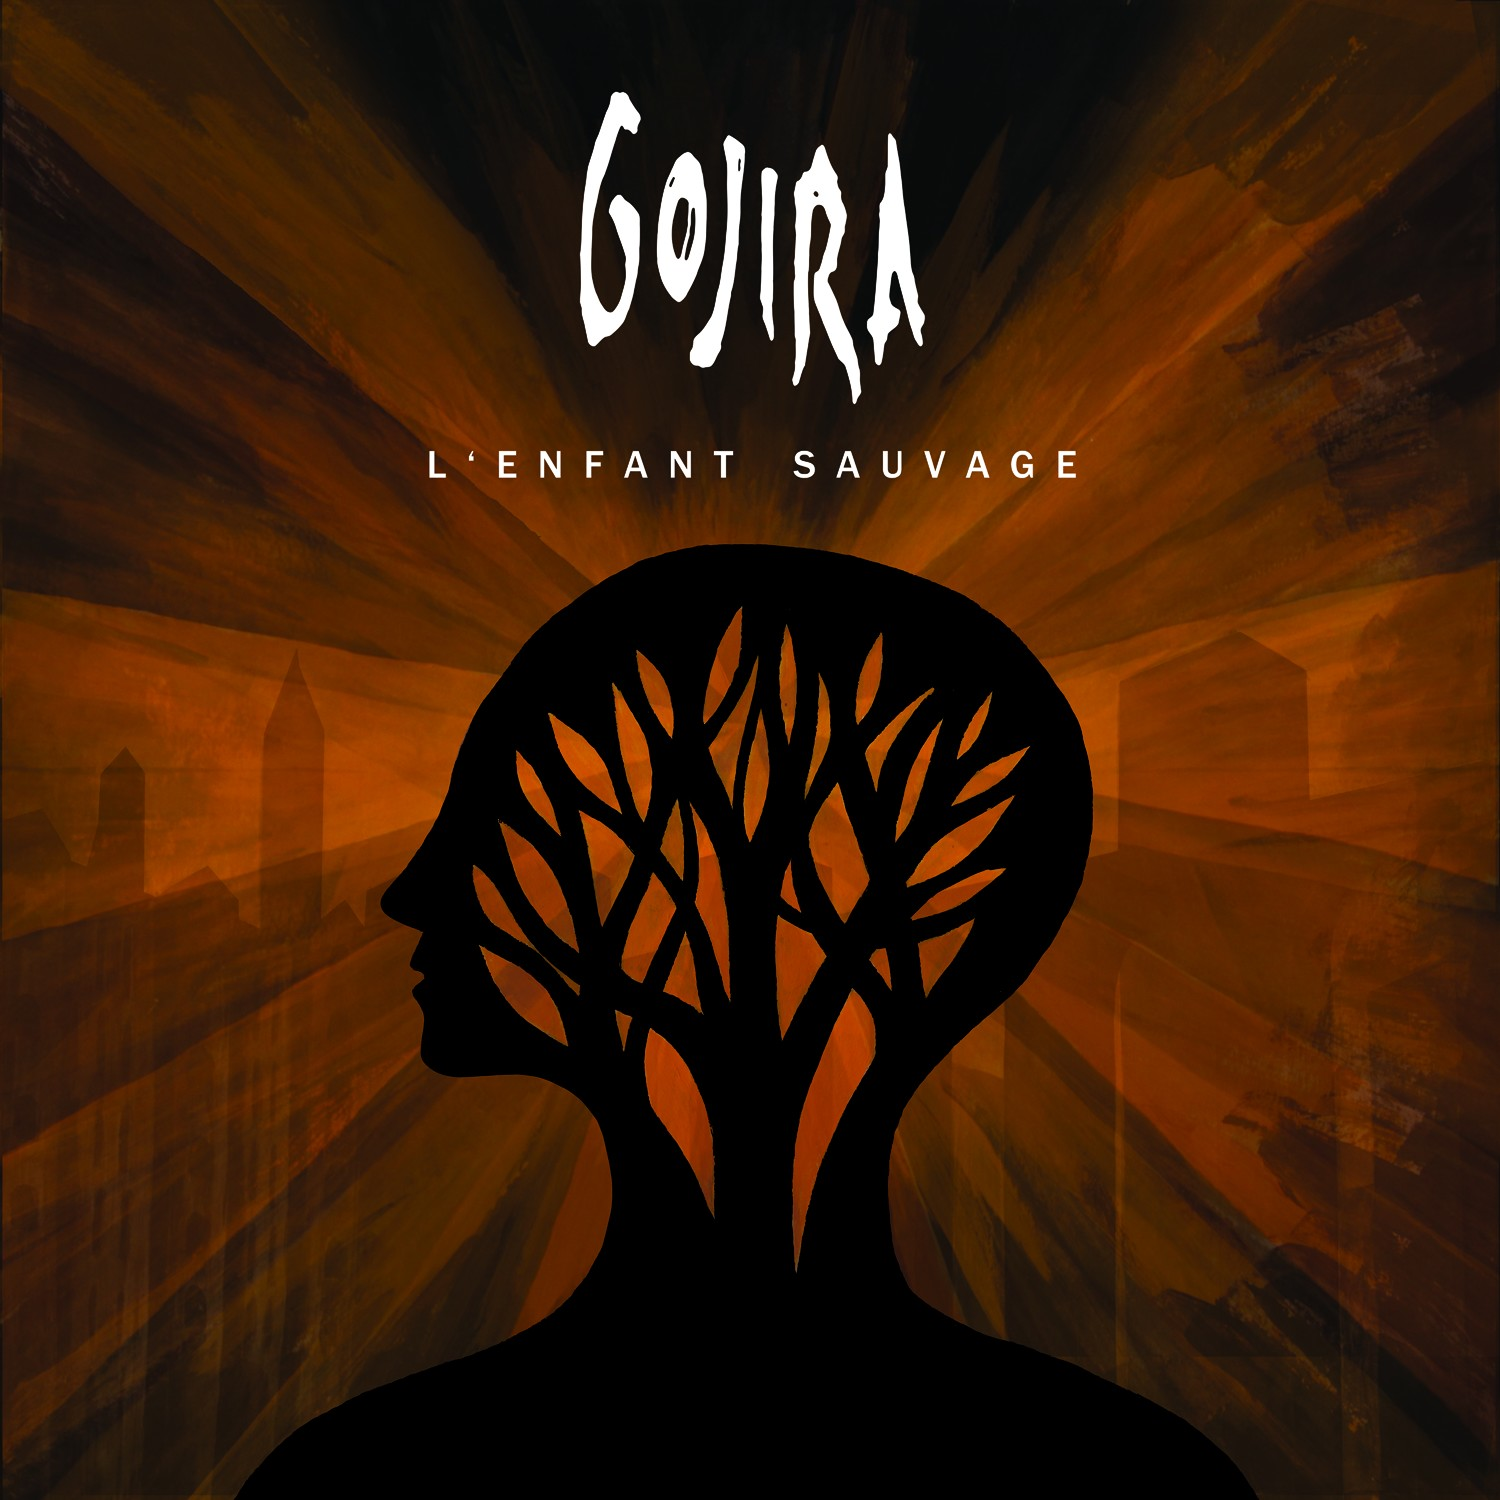 Gojira – L'Enfant Sauvage Review